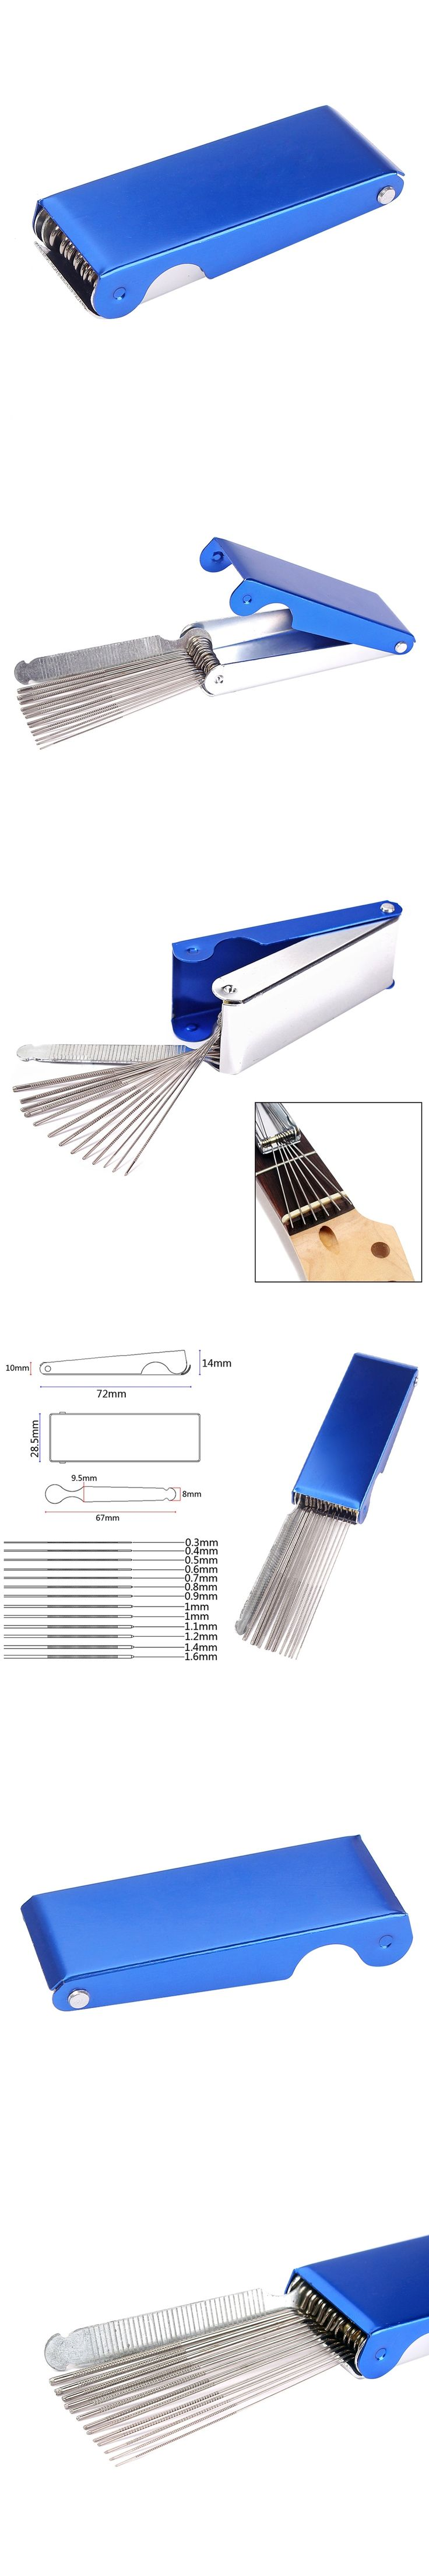 Guitar Ukulele Nut Bridge Files Filing Tool Set 13 round files and 1 flat for